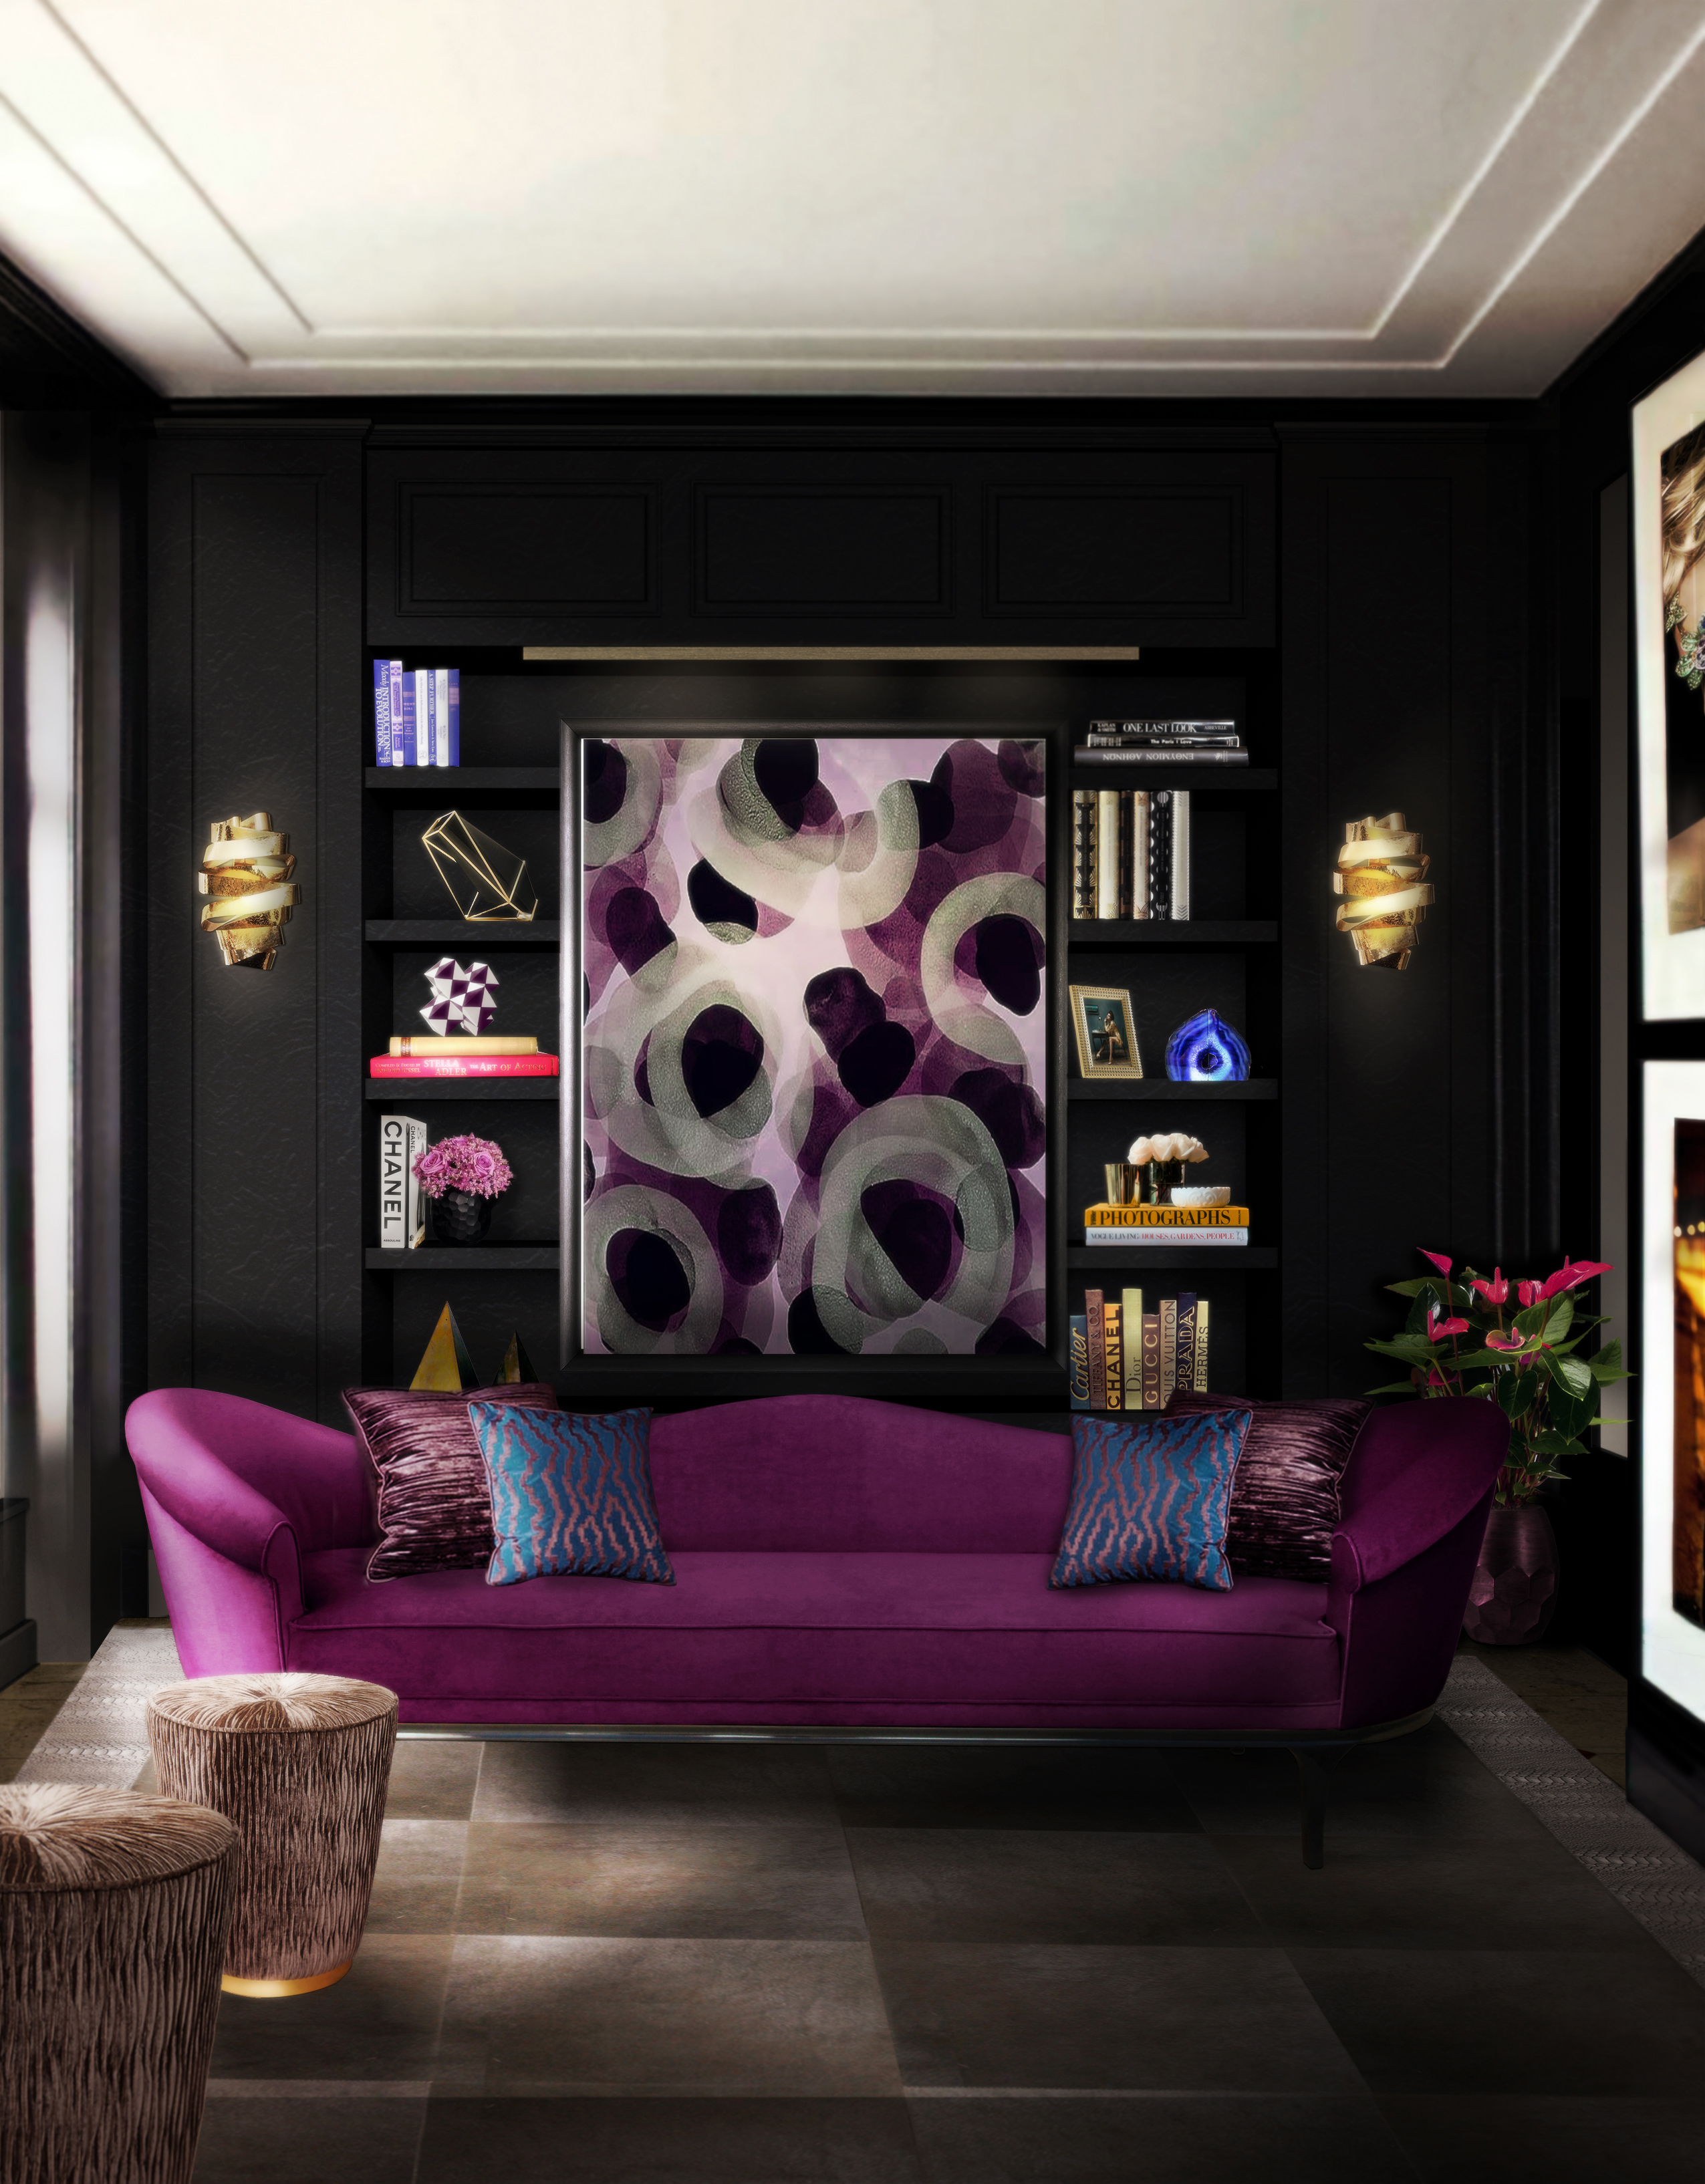 A Selection of 25 Sofas and Armchairs You Must See modern sofas and armchairs A Selection of 25 Modern Sofas and Armchairs You Must See A Selection of 25 Modern Sofas You Must See 2